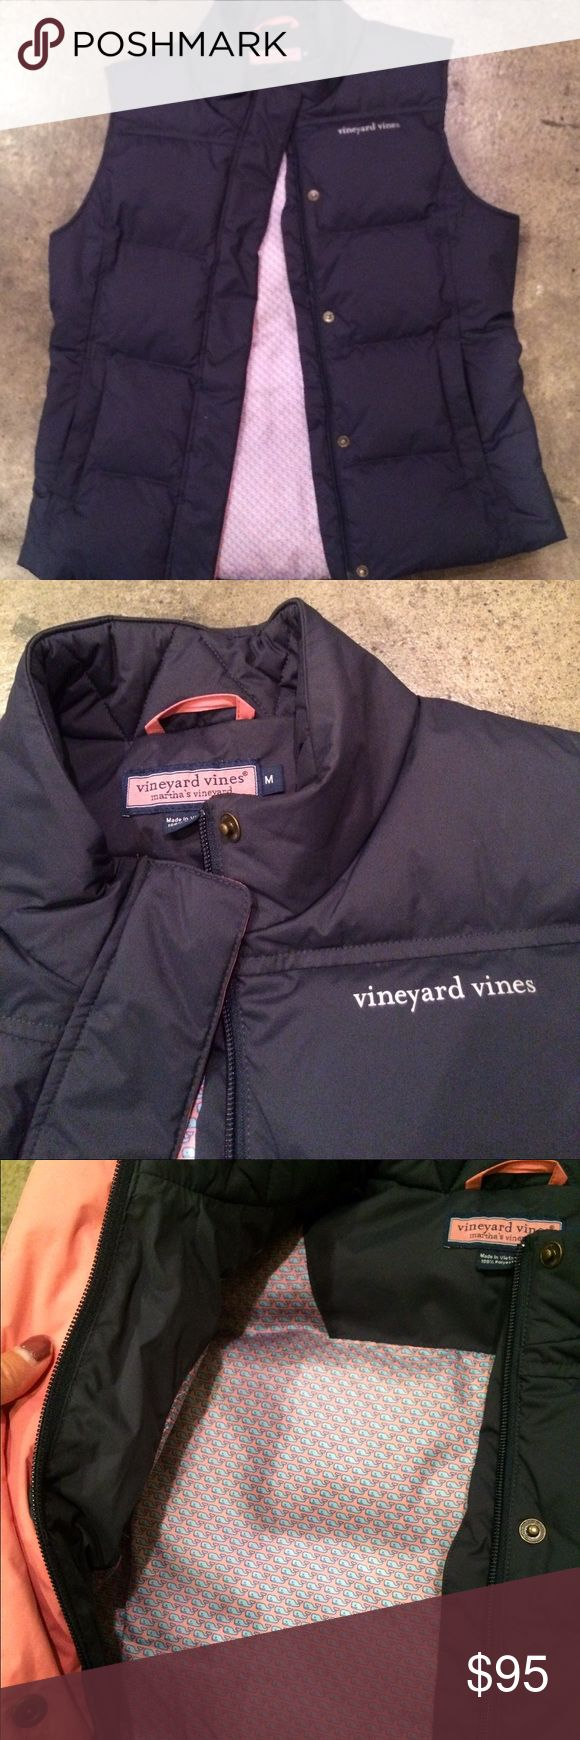 NWOT Vineyard Vines Puffer Vest Brand new, never worn. Only flaw is a tiny mark above inner button (see 4th pictures). Signature Vineyard Vines whale logo located on the inside. Color is in Vineyard navy. Willing to trade, not negotiate on price, for lululemon. Vineyard Vines Jackets & Coats Vests